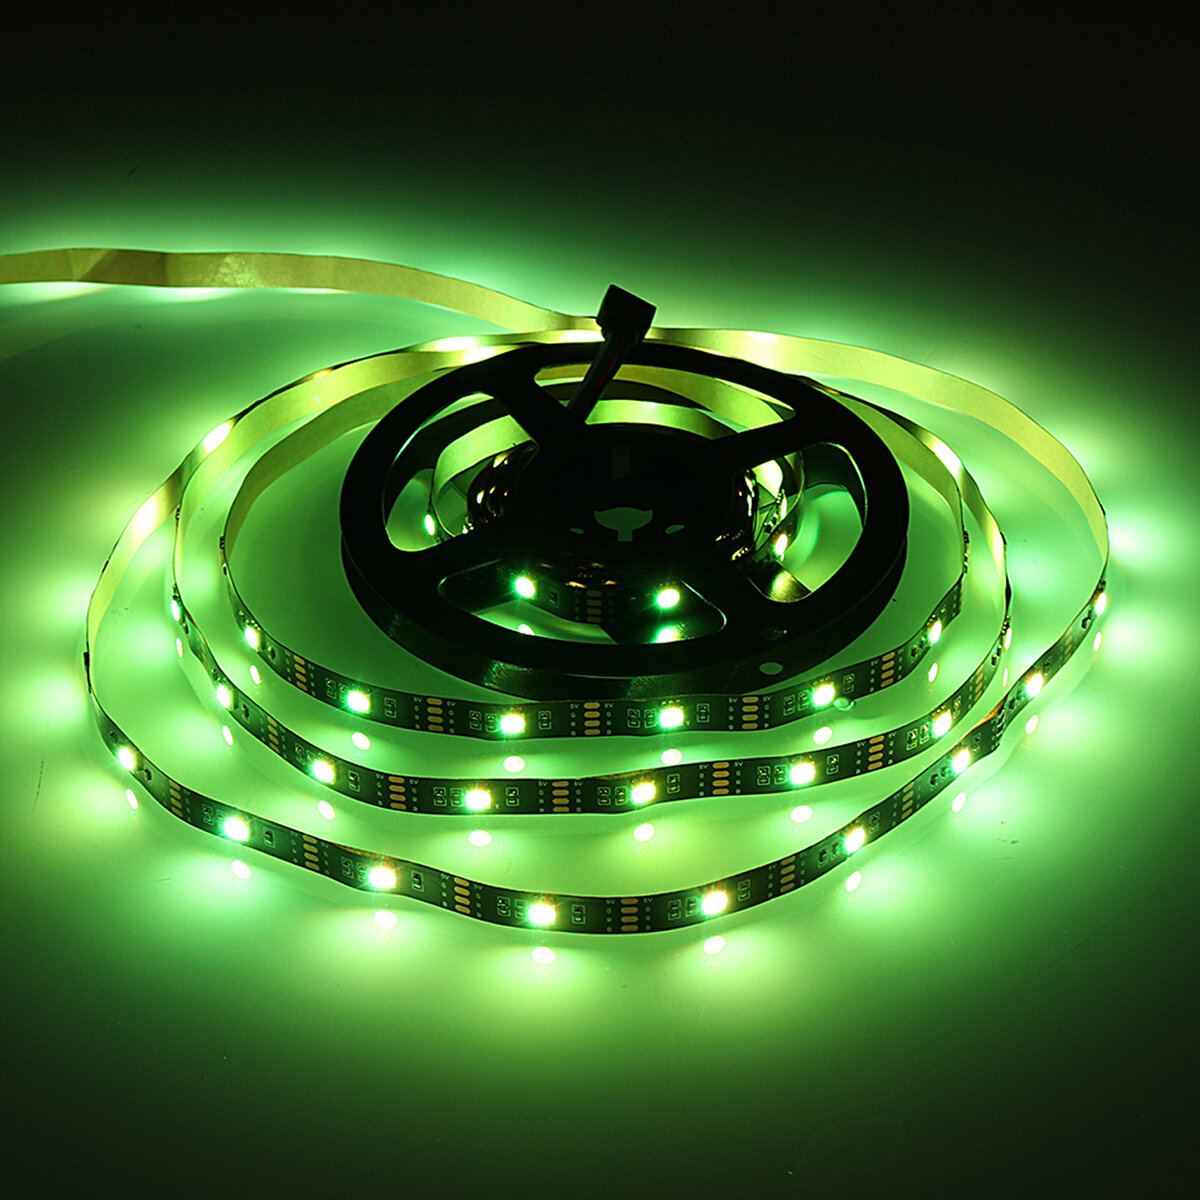 DC5V Non waterproof 0.5m 2m 3m 5m 5050 bluetooth APP Control RGB USB LED Strip Light KTV Hotel Home Decor - 6